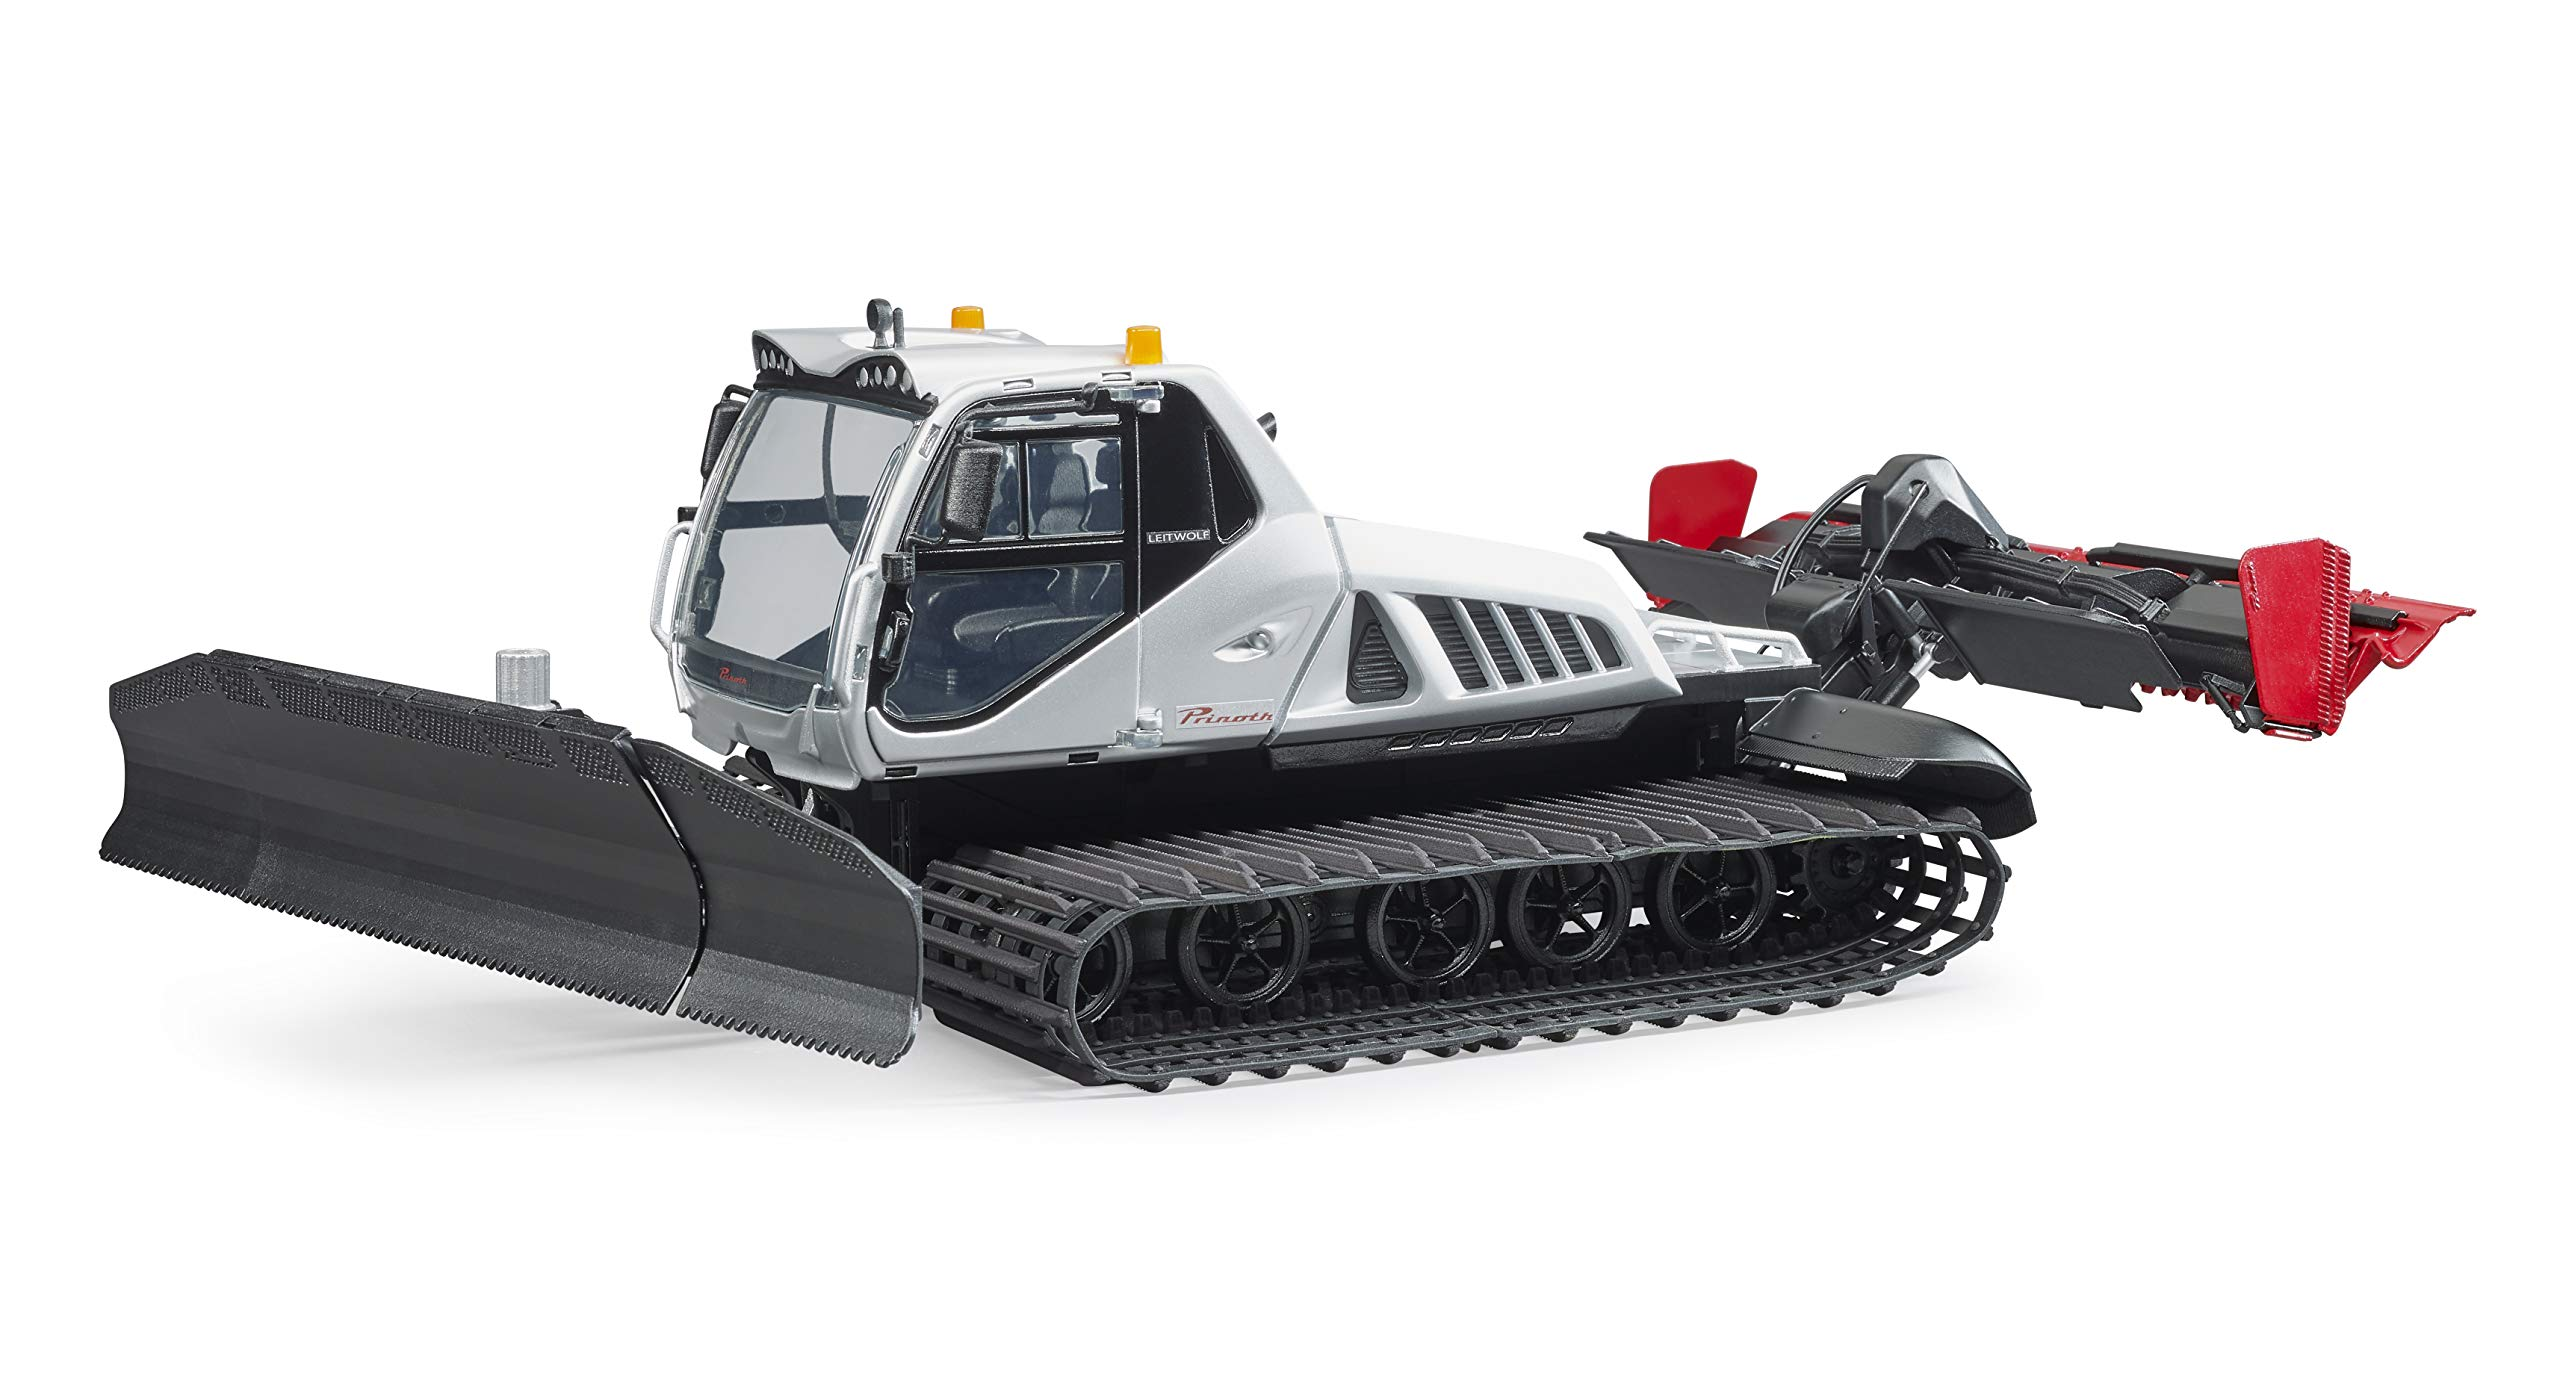 Bruder Toys Prinoth Snow Groomer Leitwolf by Bruder Toys (Image #5)